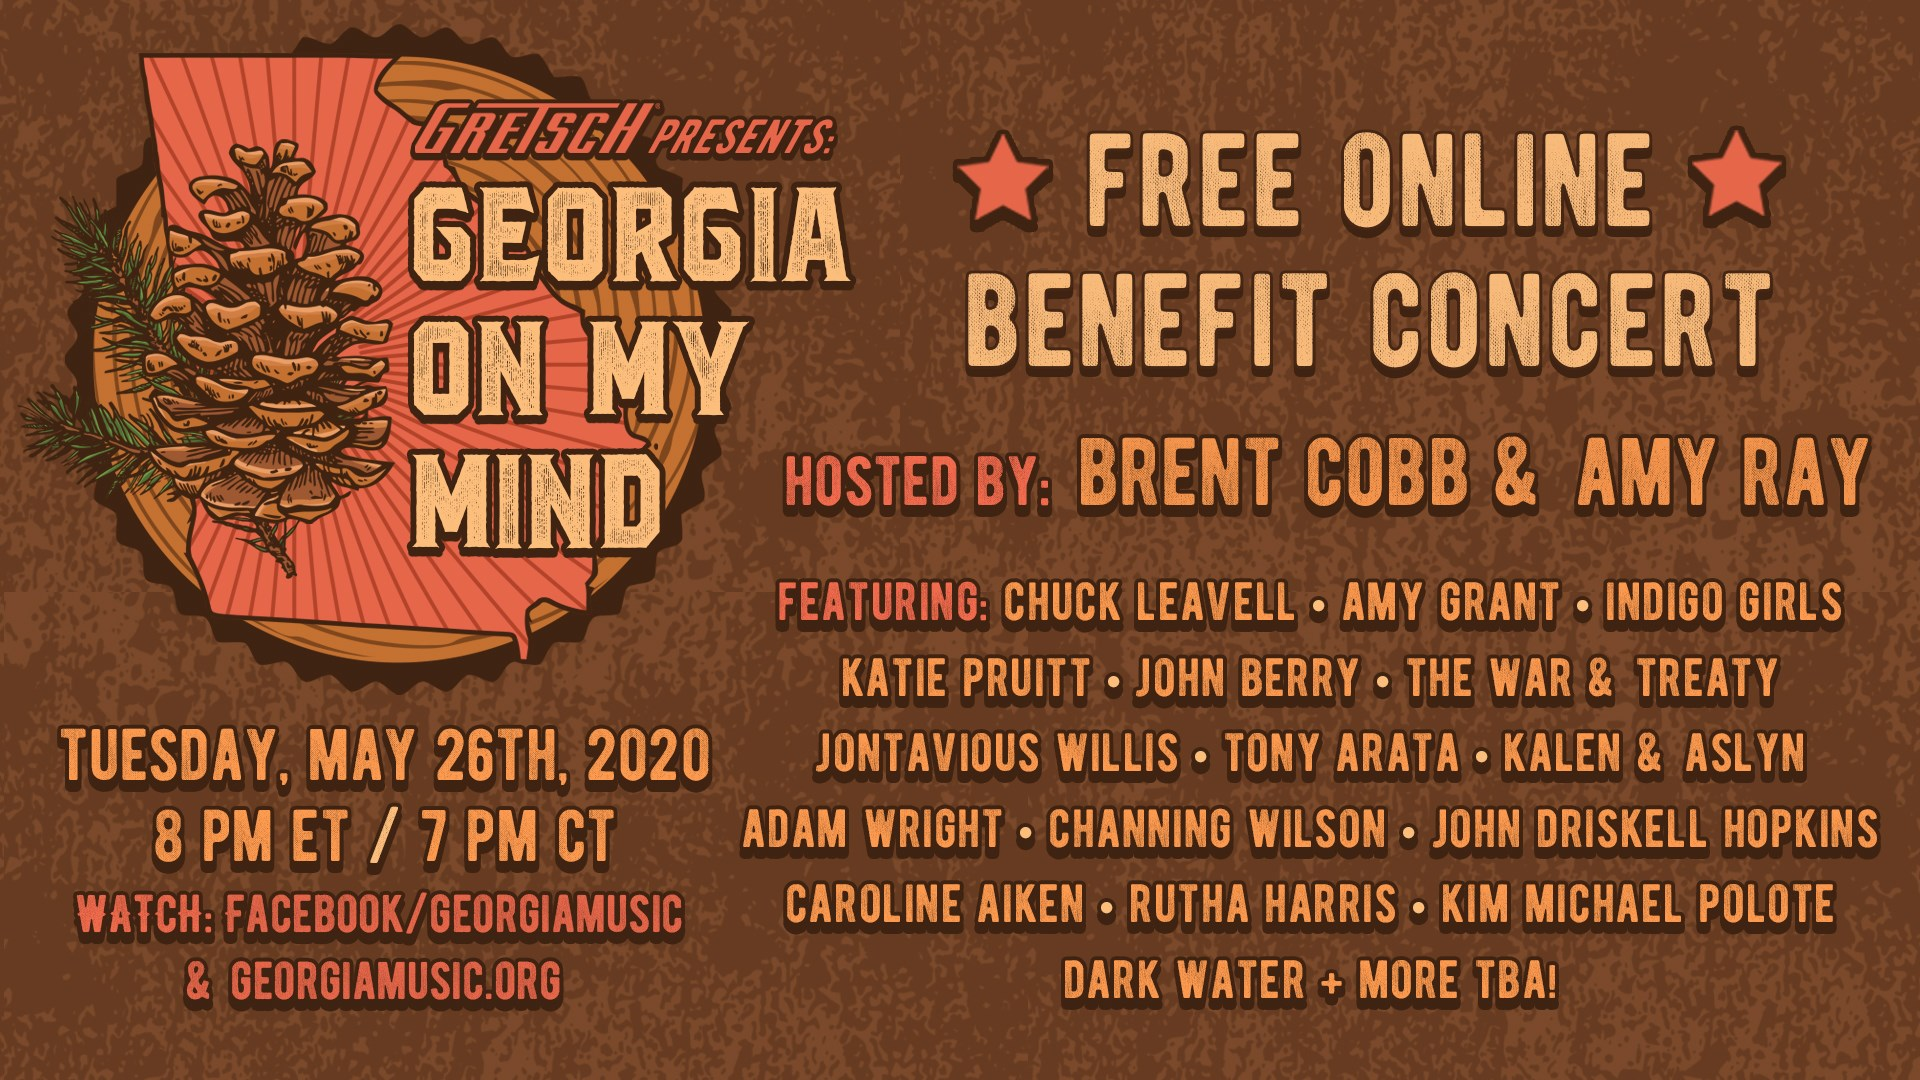 Georgia On My Mind benefit Concert poster